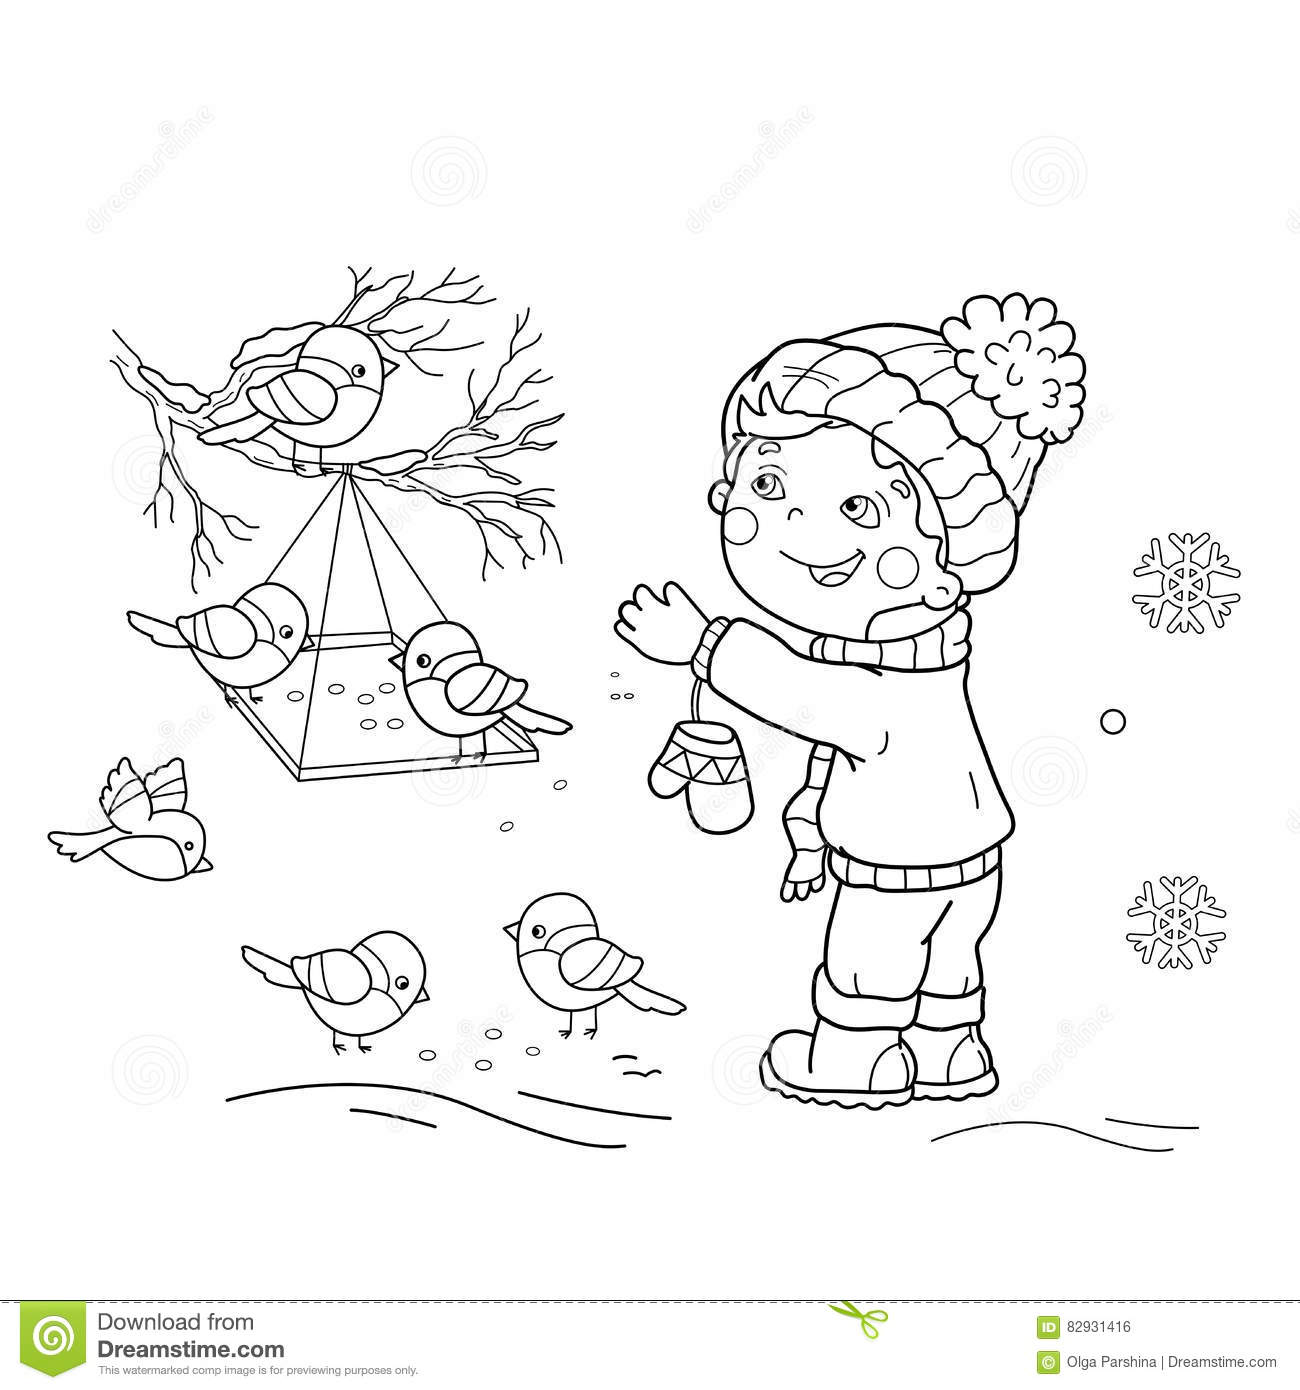 Download Coloring Page Outline Of Cartoon Boy Feeding Birds Bird Feeder Stock Vector